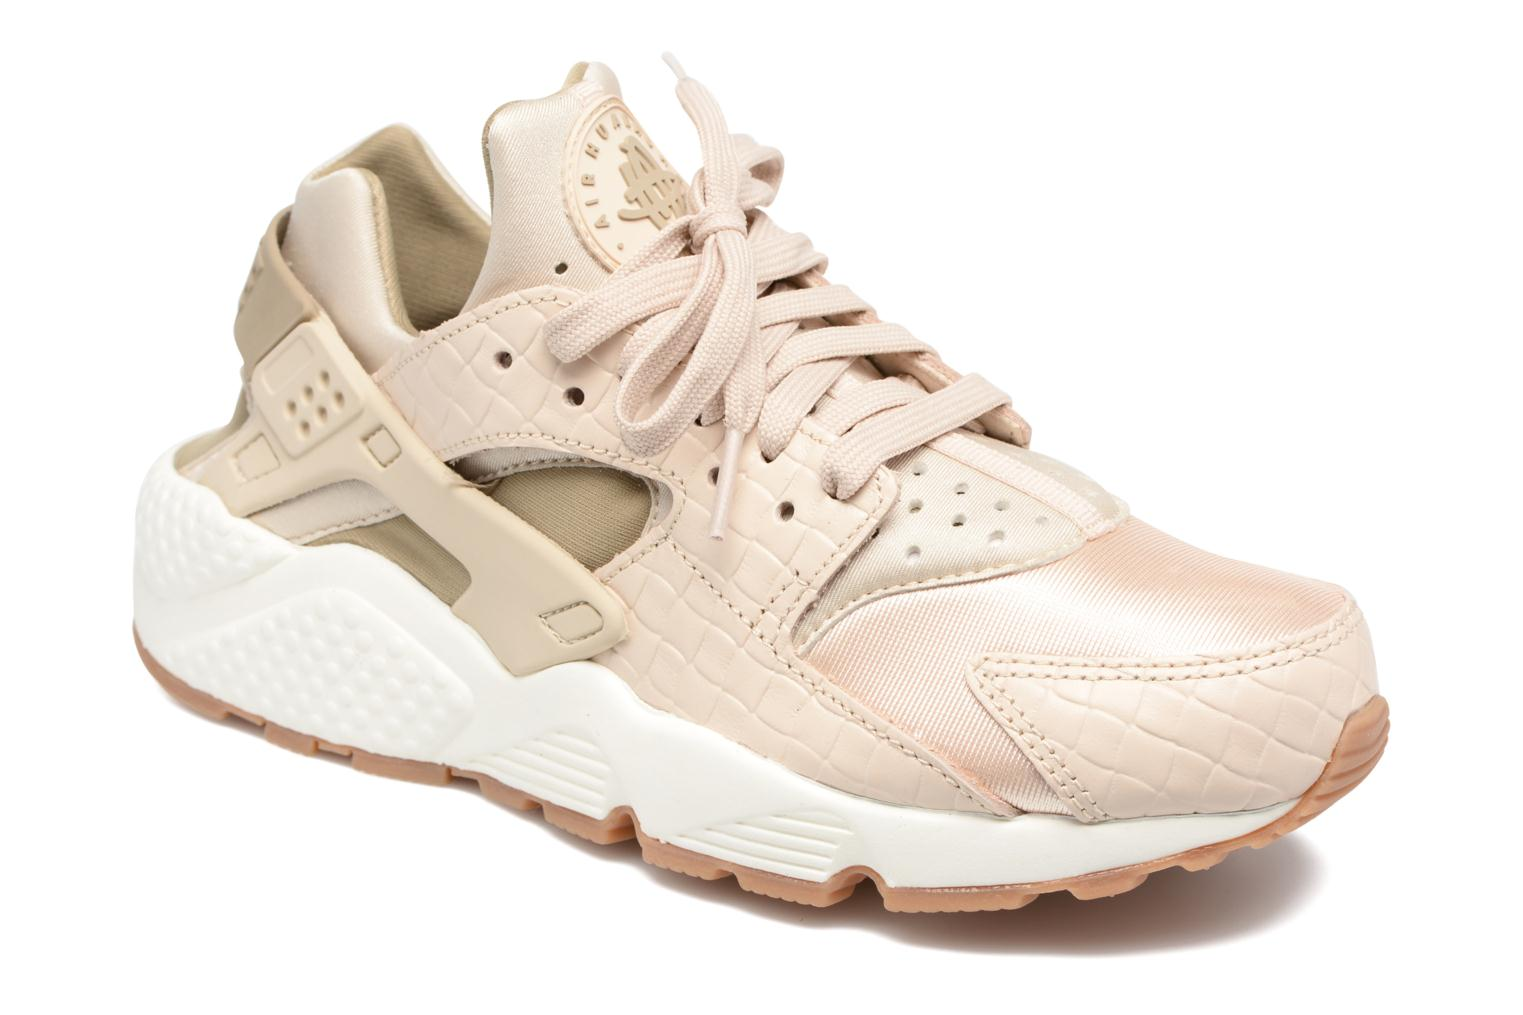 OatmealKhaki-Sail-Gum Med Brown